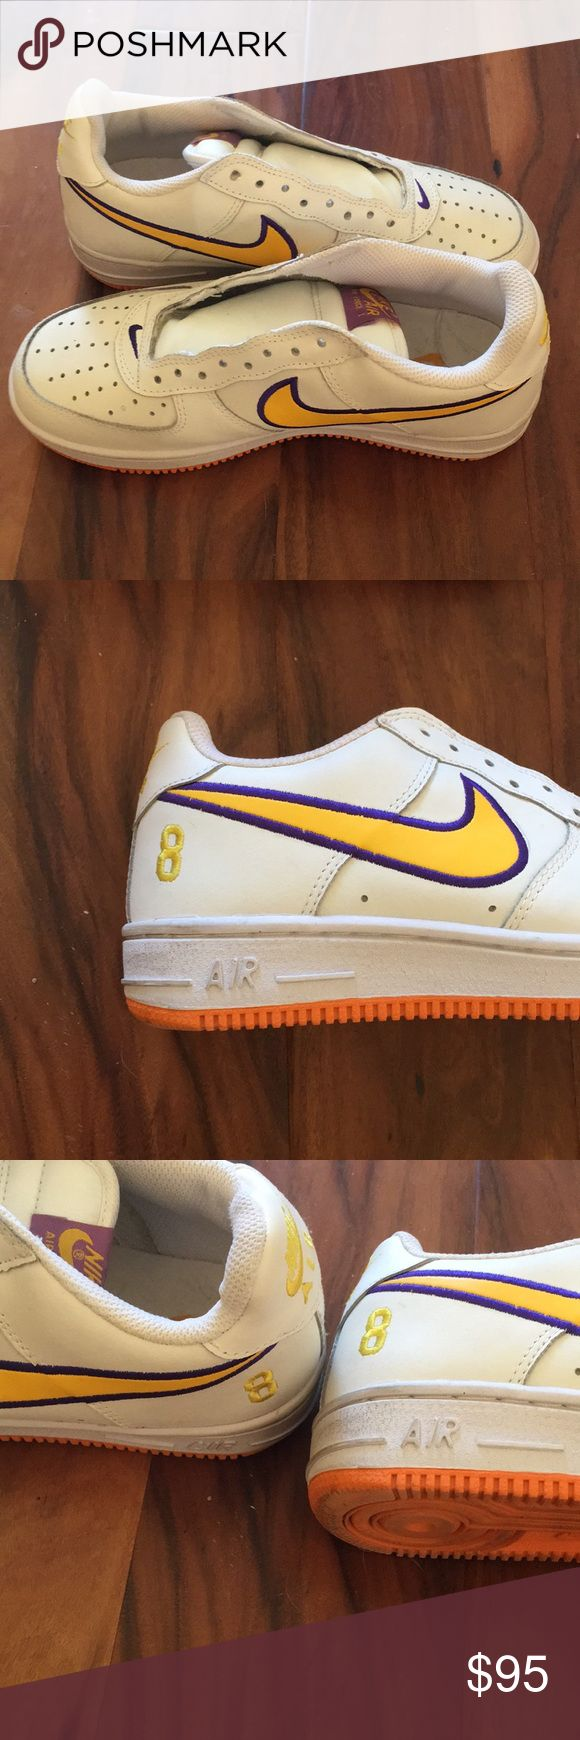 Kobe Bryant edition Air Force 1's SPECIAL EDITION KOBE BRYANT NIKE Air Force 1's Men's Size 9. LIKE BRAND NEW! Nike Shoes Sneakers